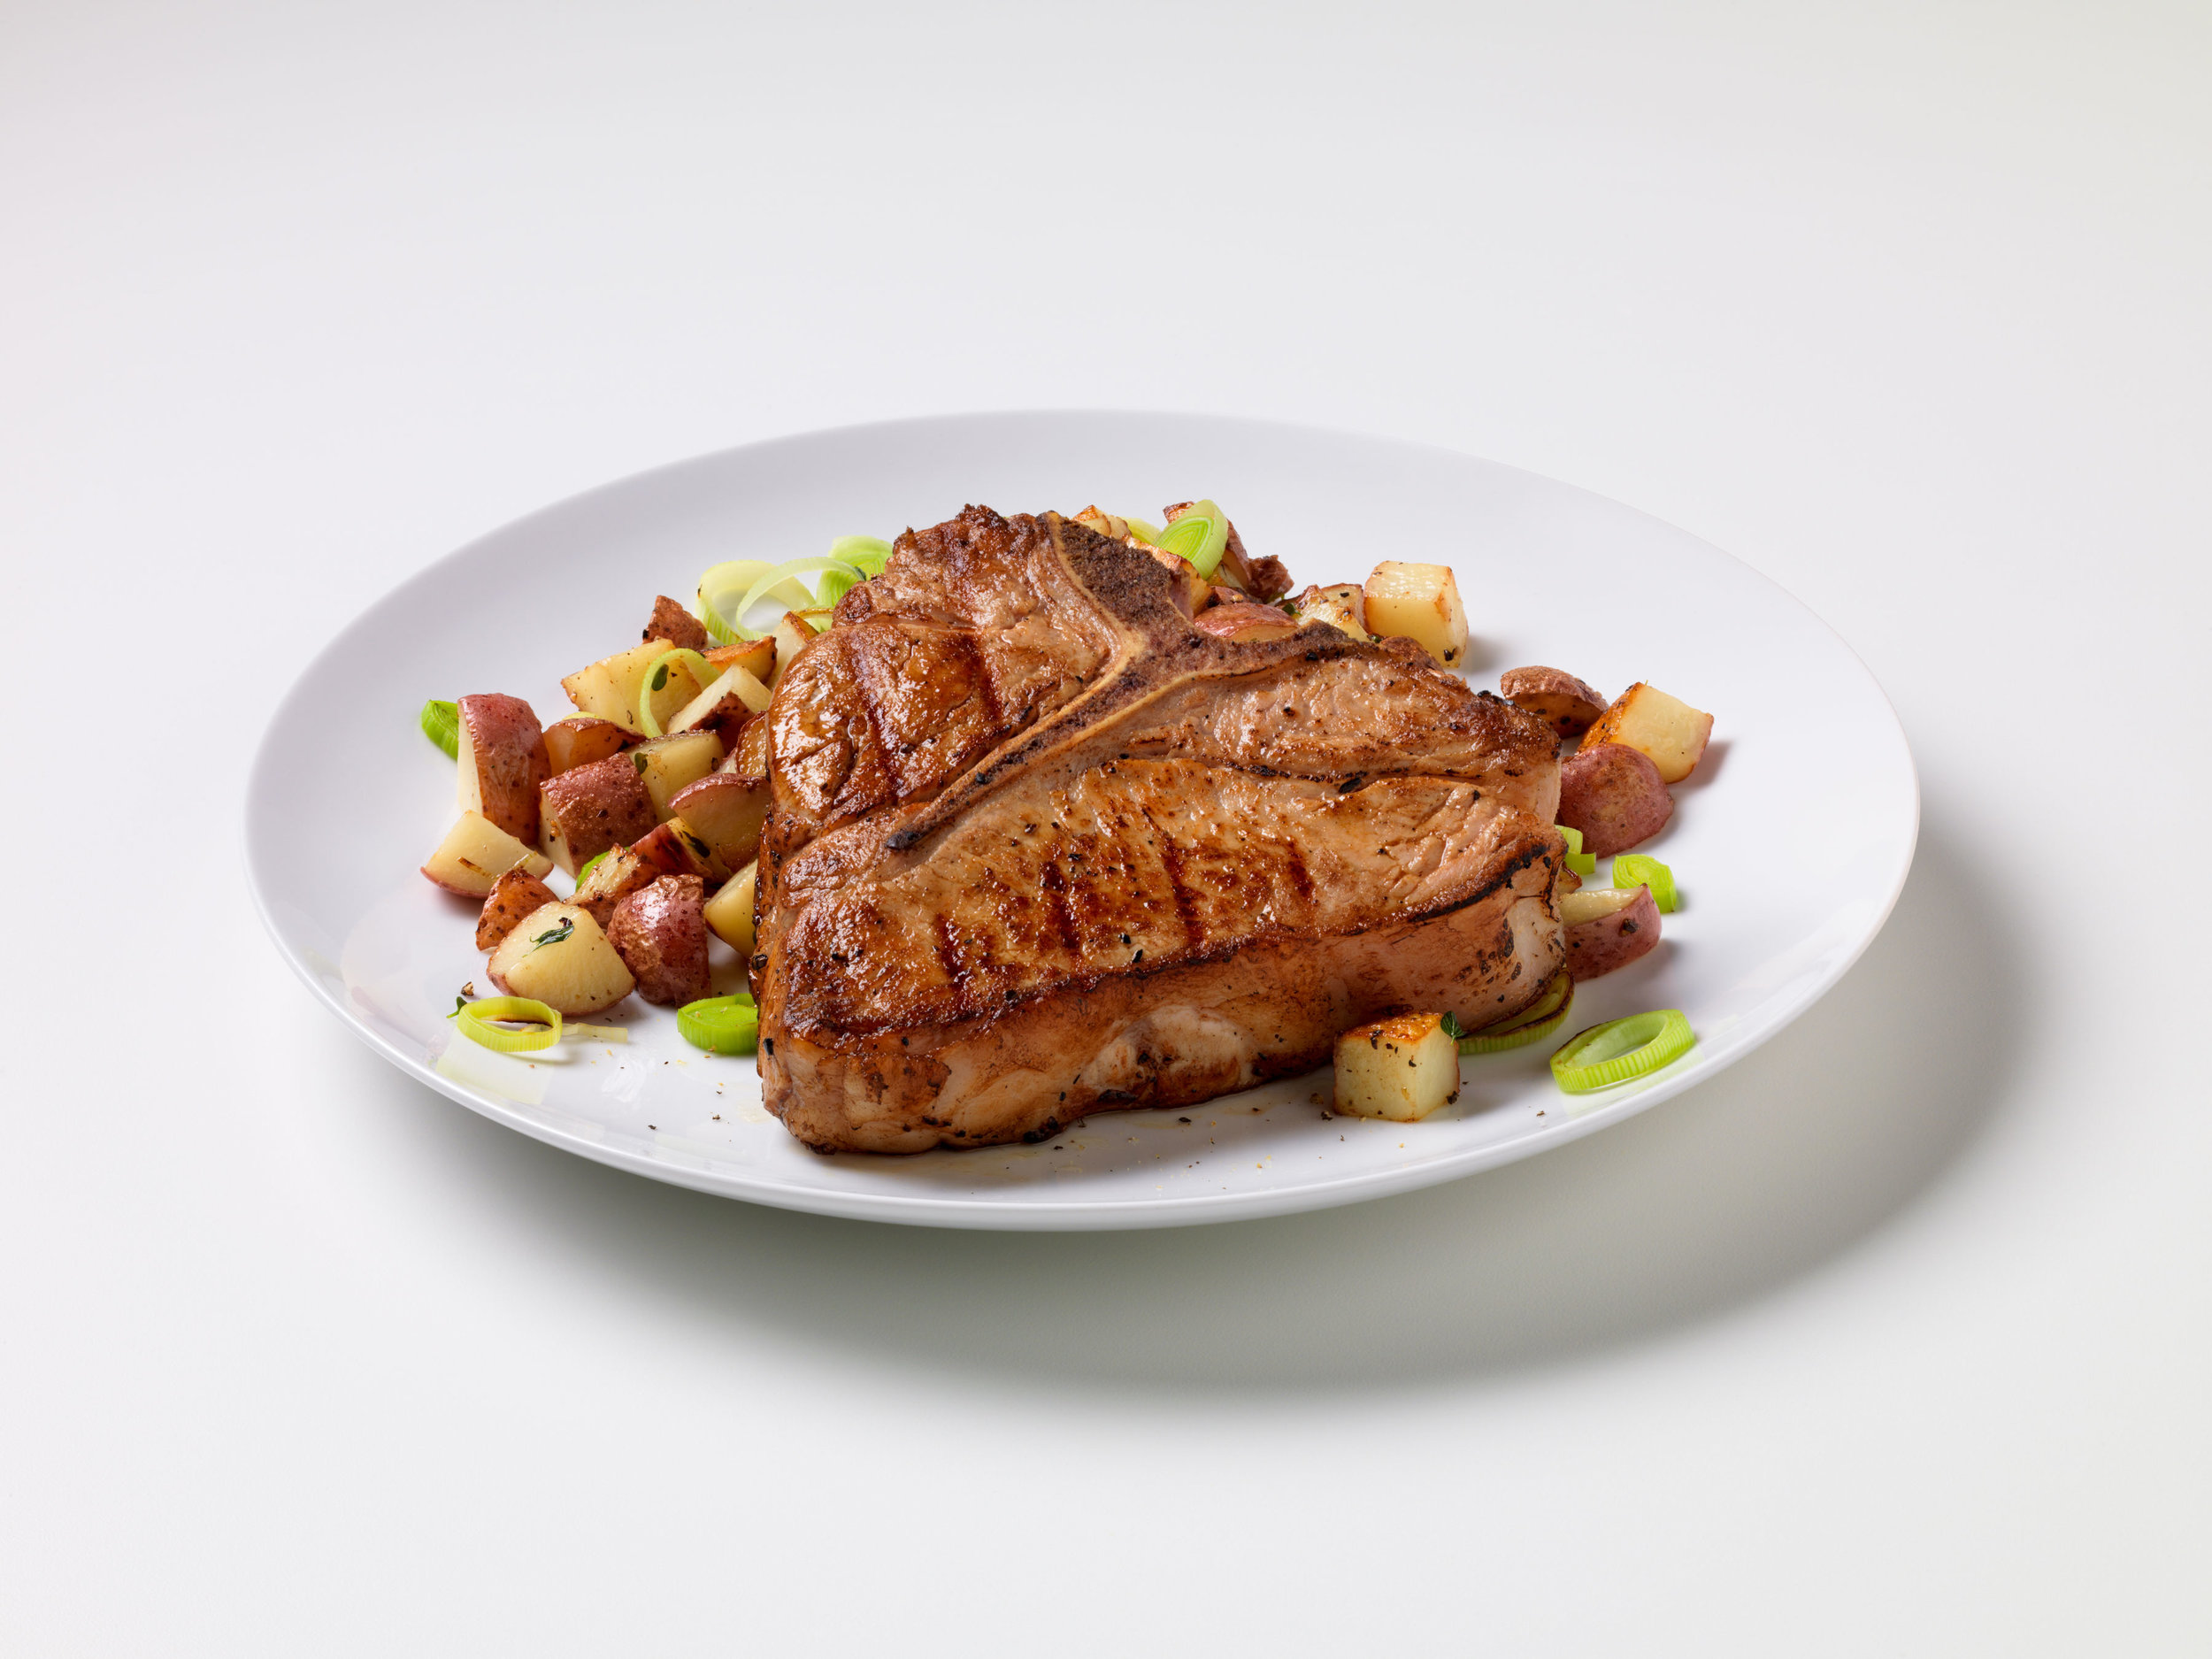 Grilled Veal Chop with Potato Leek Hash